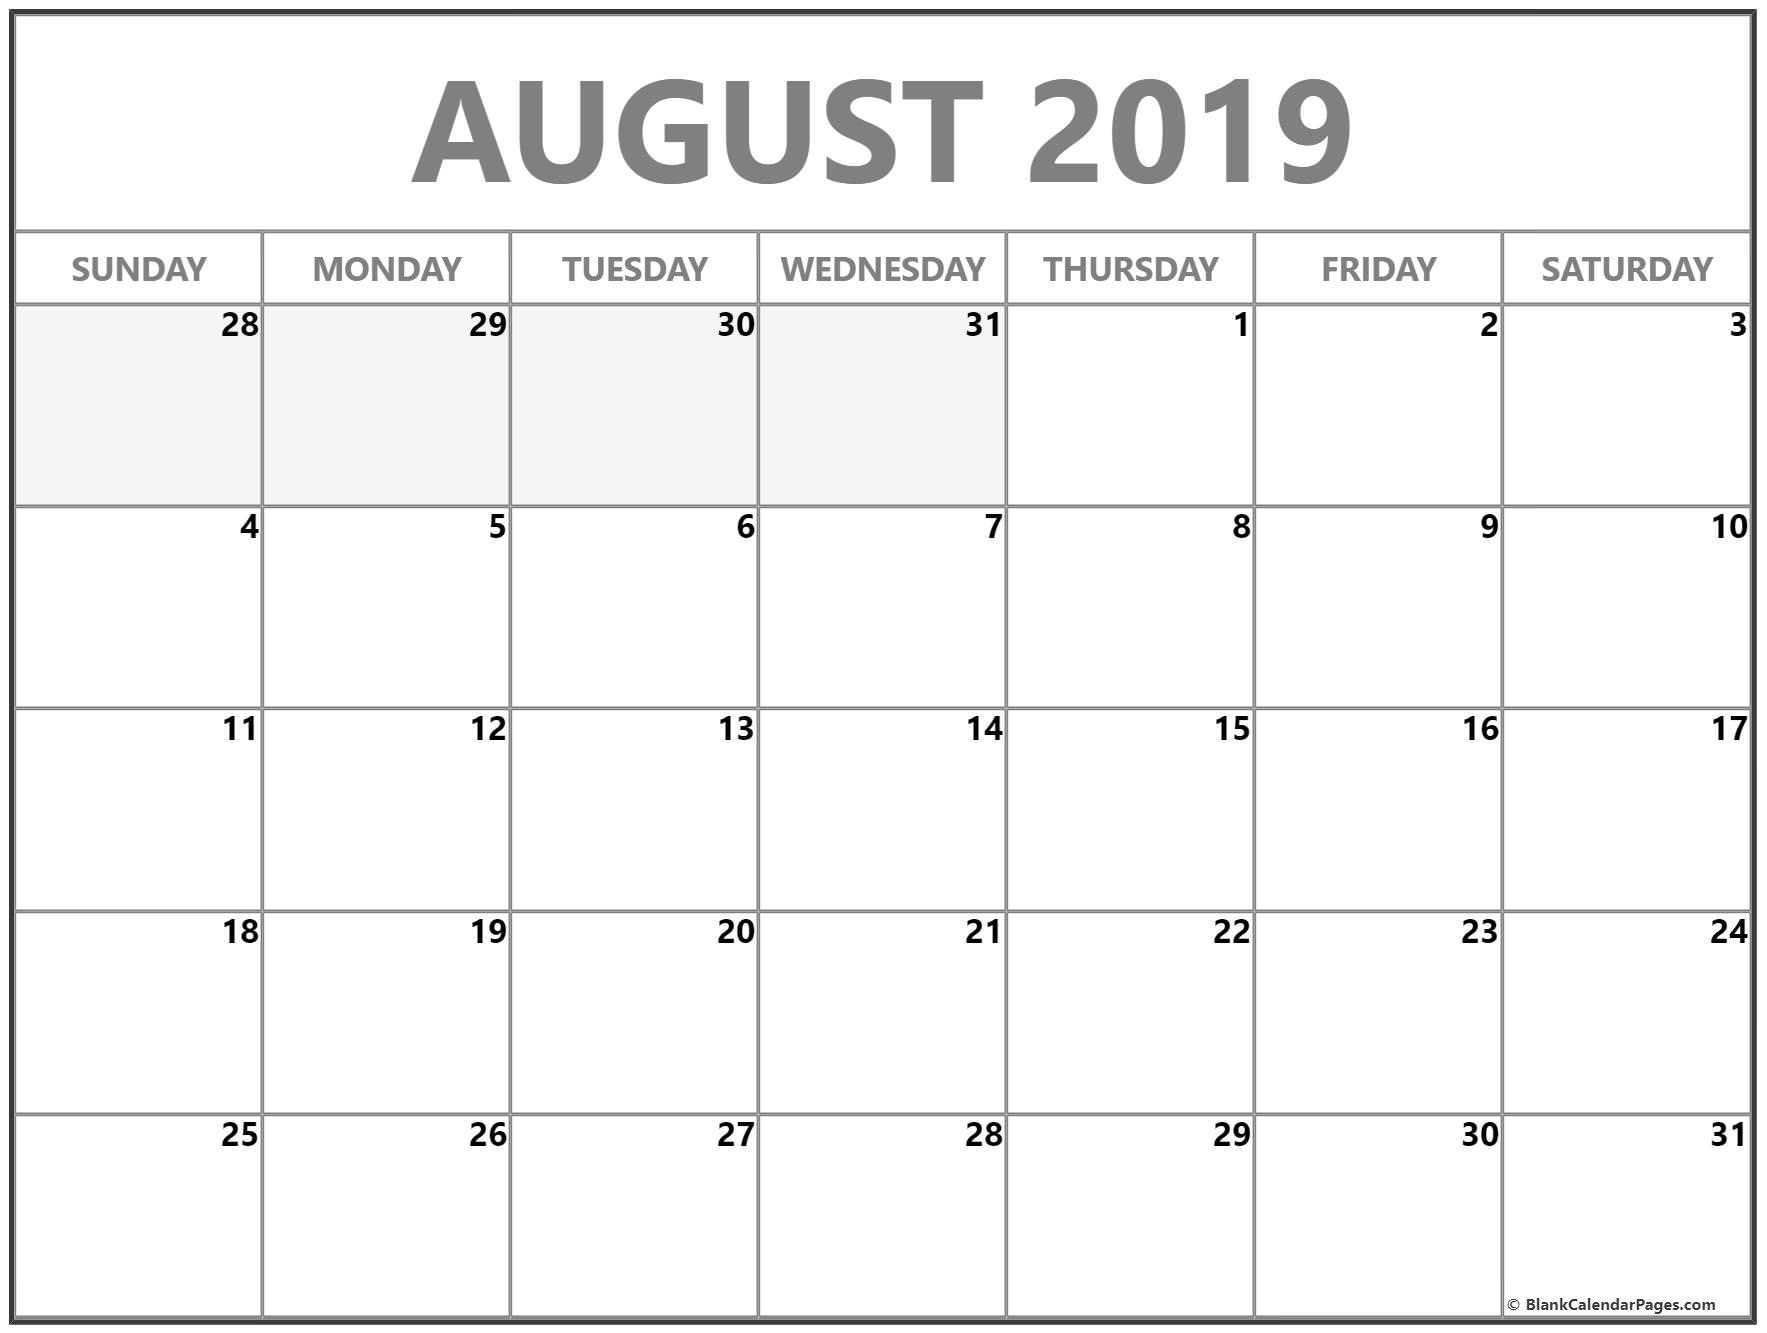 August 2019 Calendar | Free Printable Monthly Calendars-School Monthly Calendar No Weekends